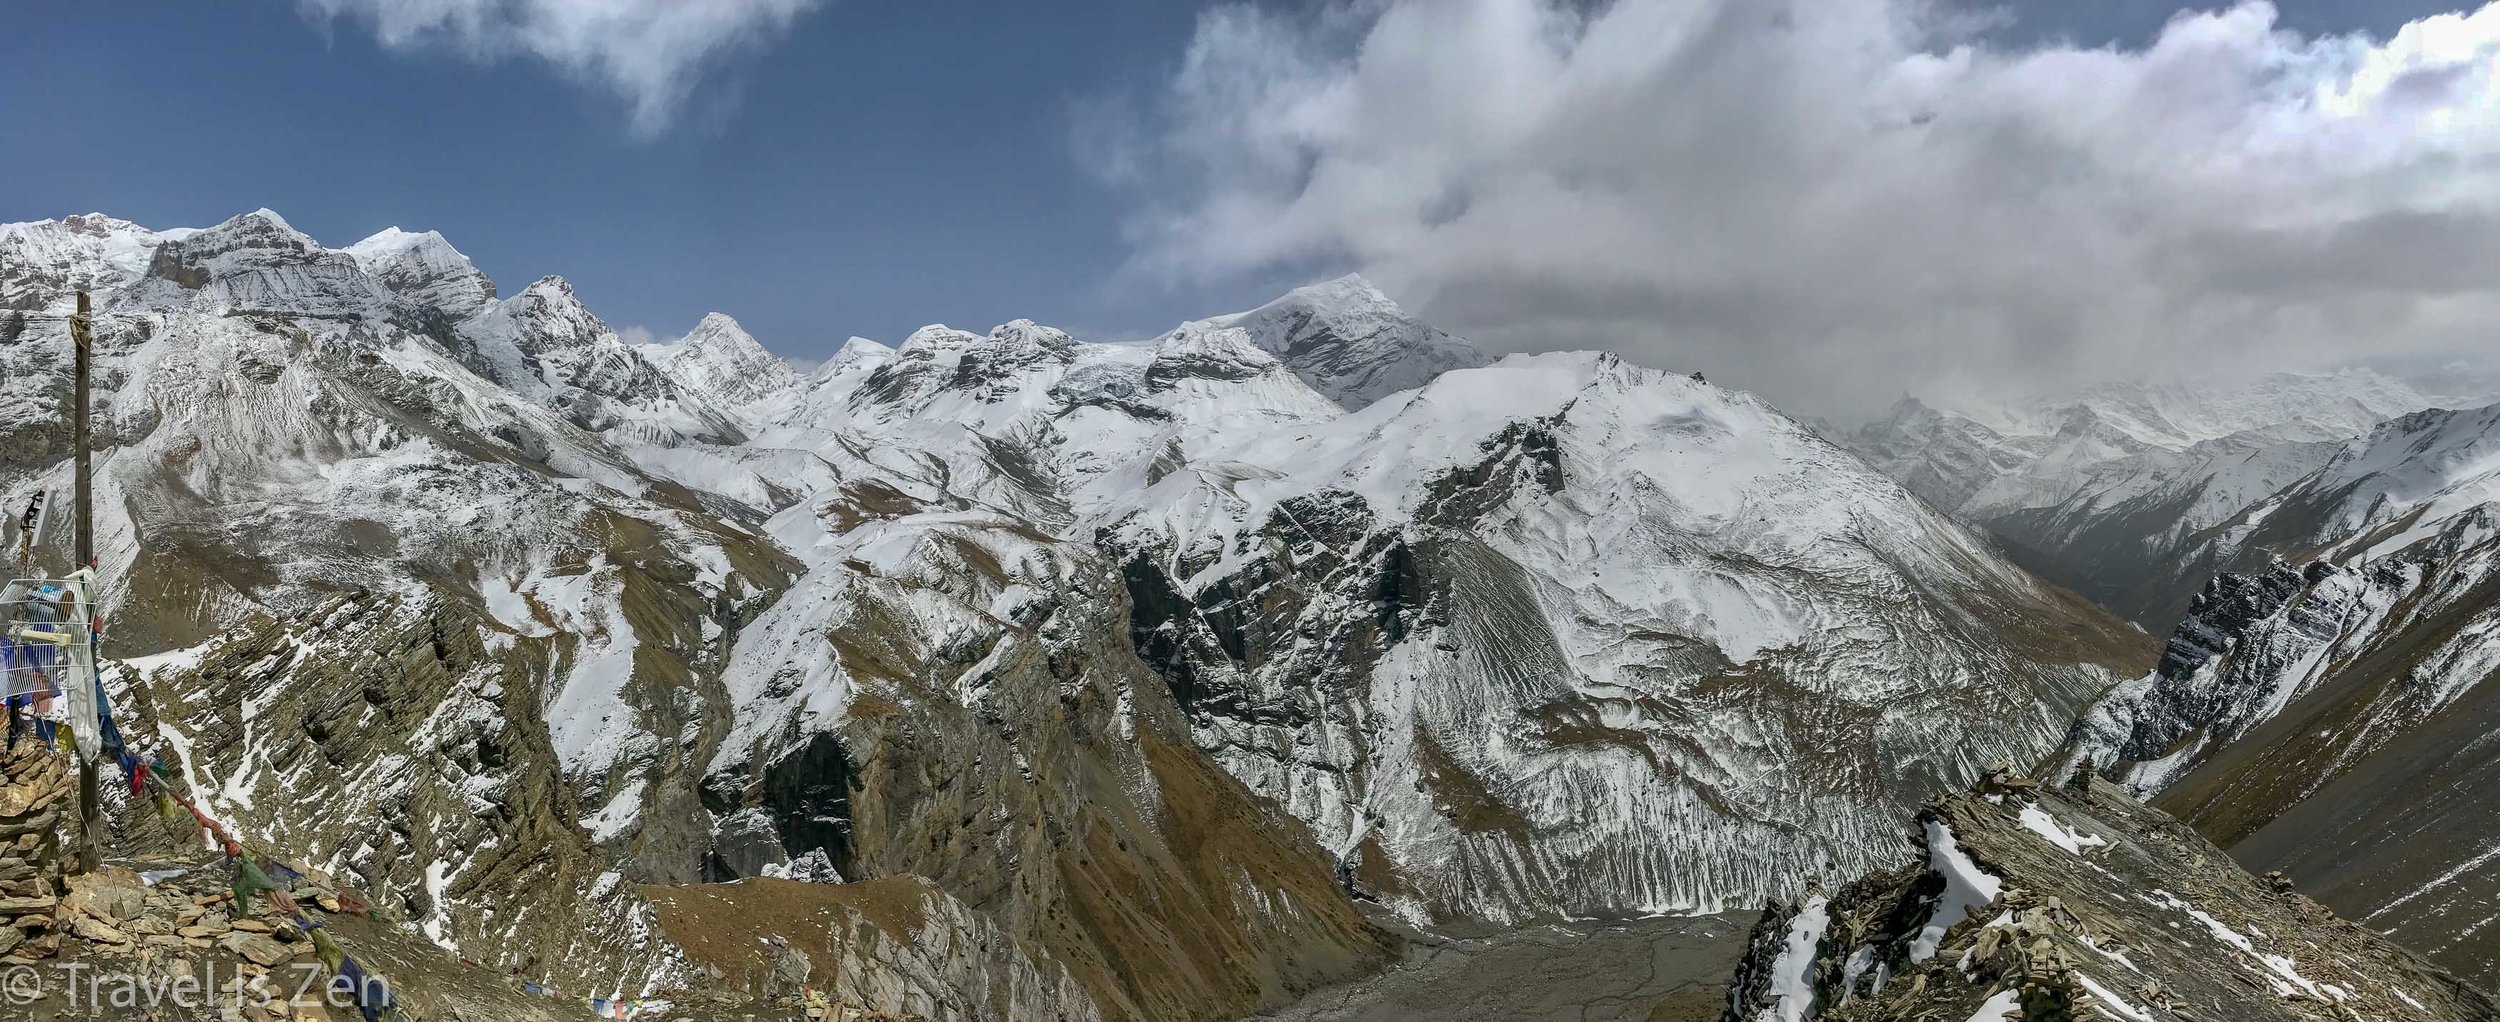 View from High Camp; Thorong Phedi lies on the valley floor.